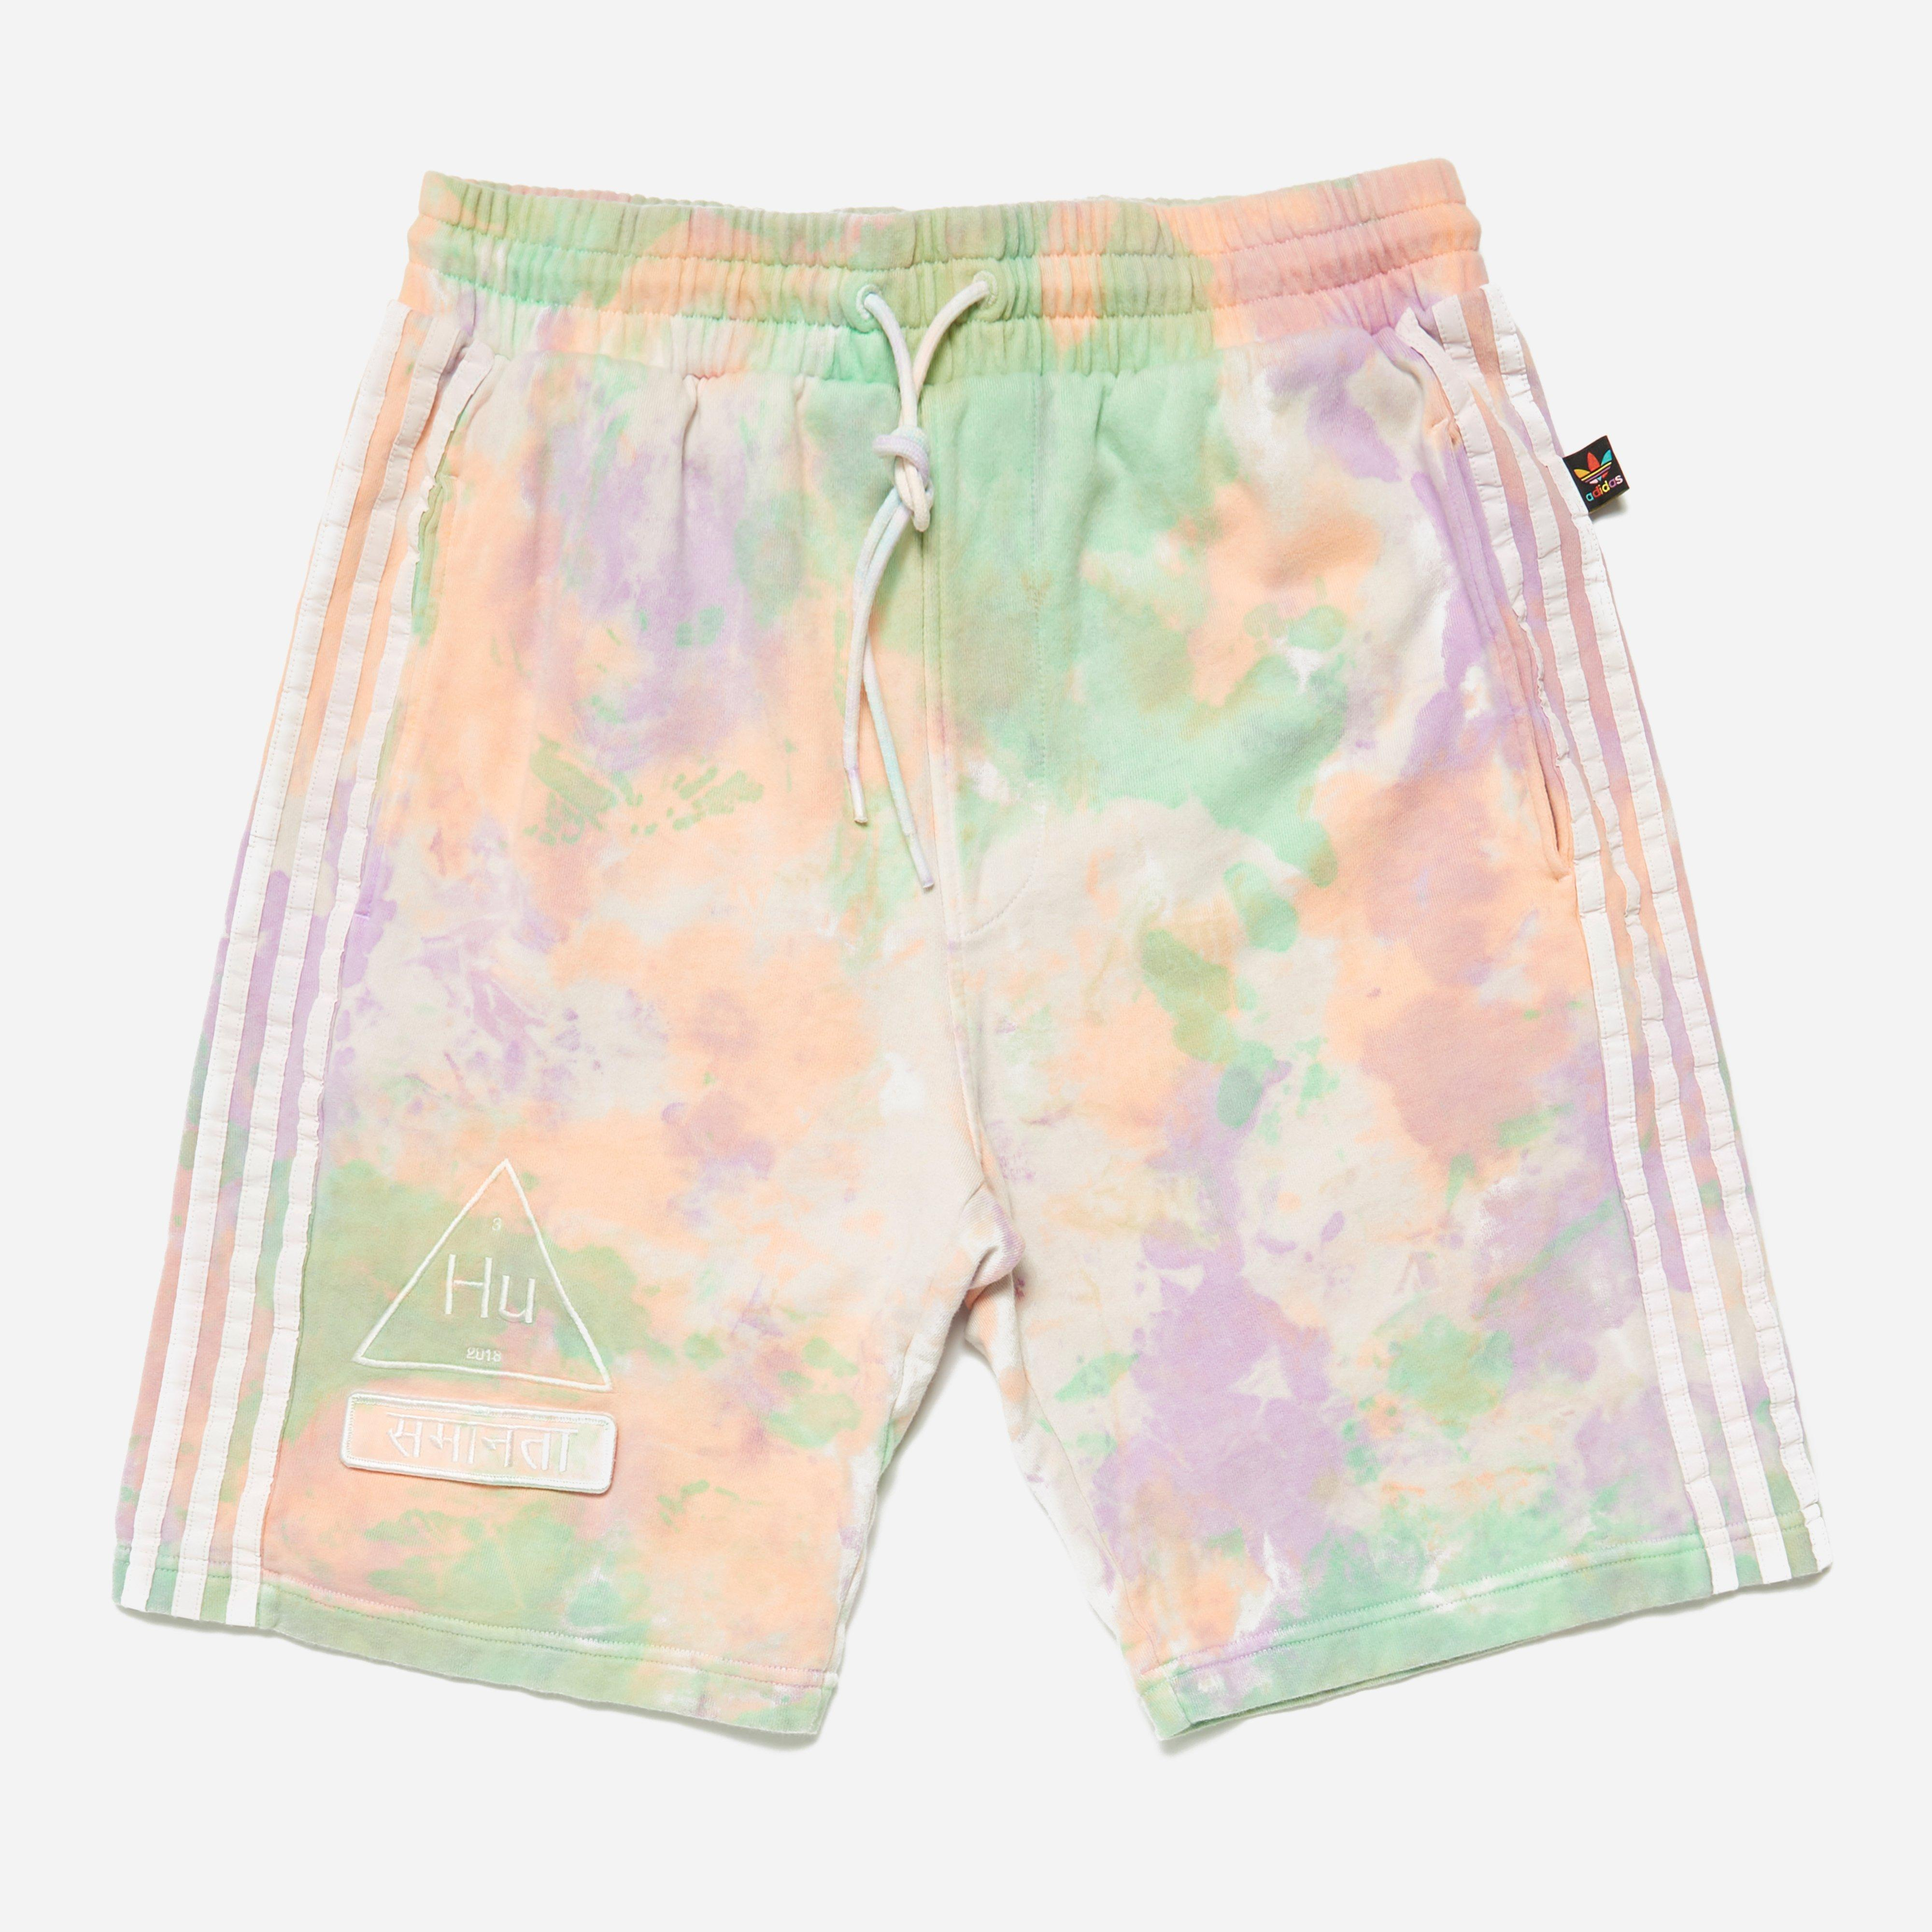 adidas Originals x Pharrell HU Holi Shorts